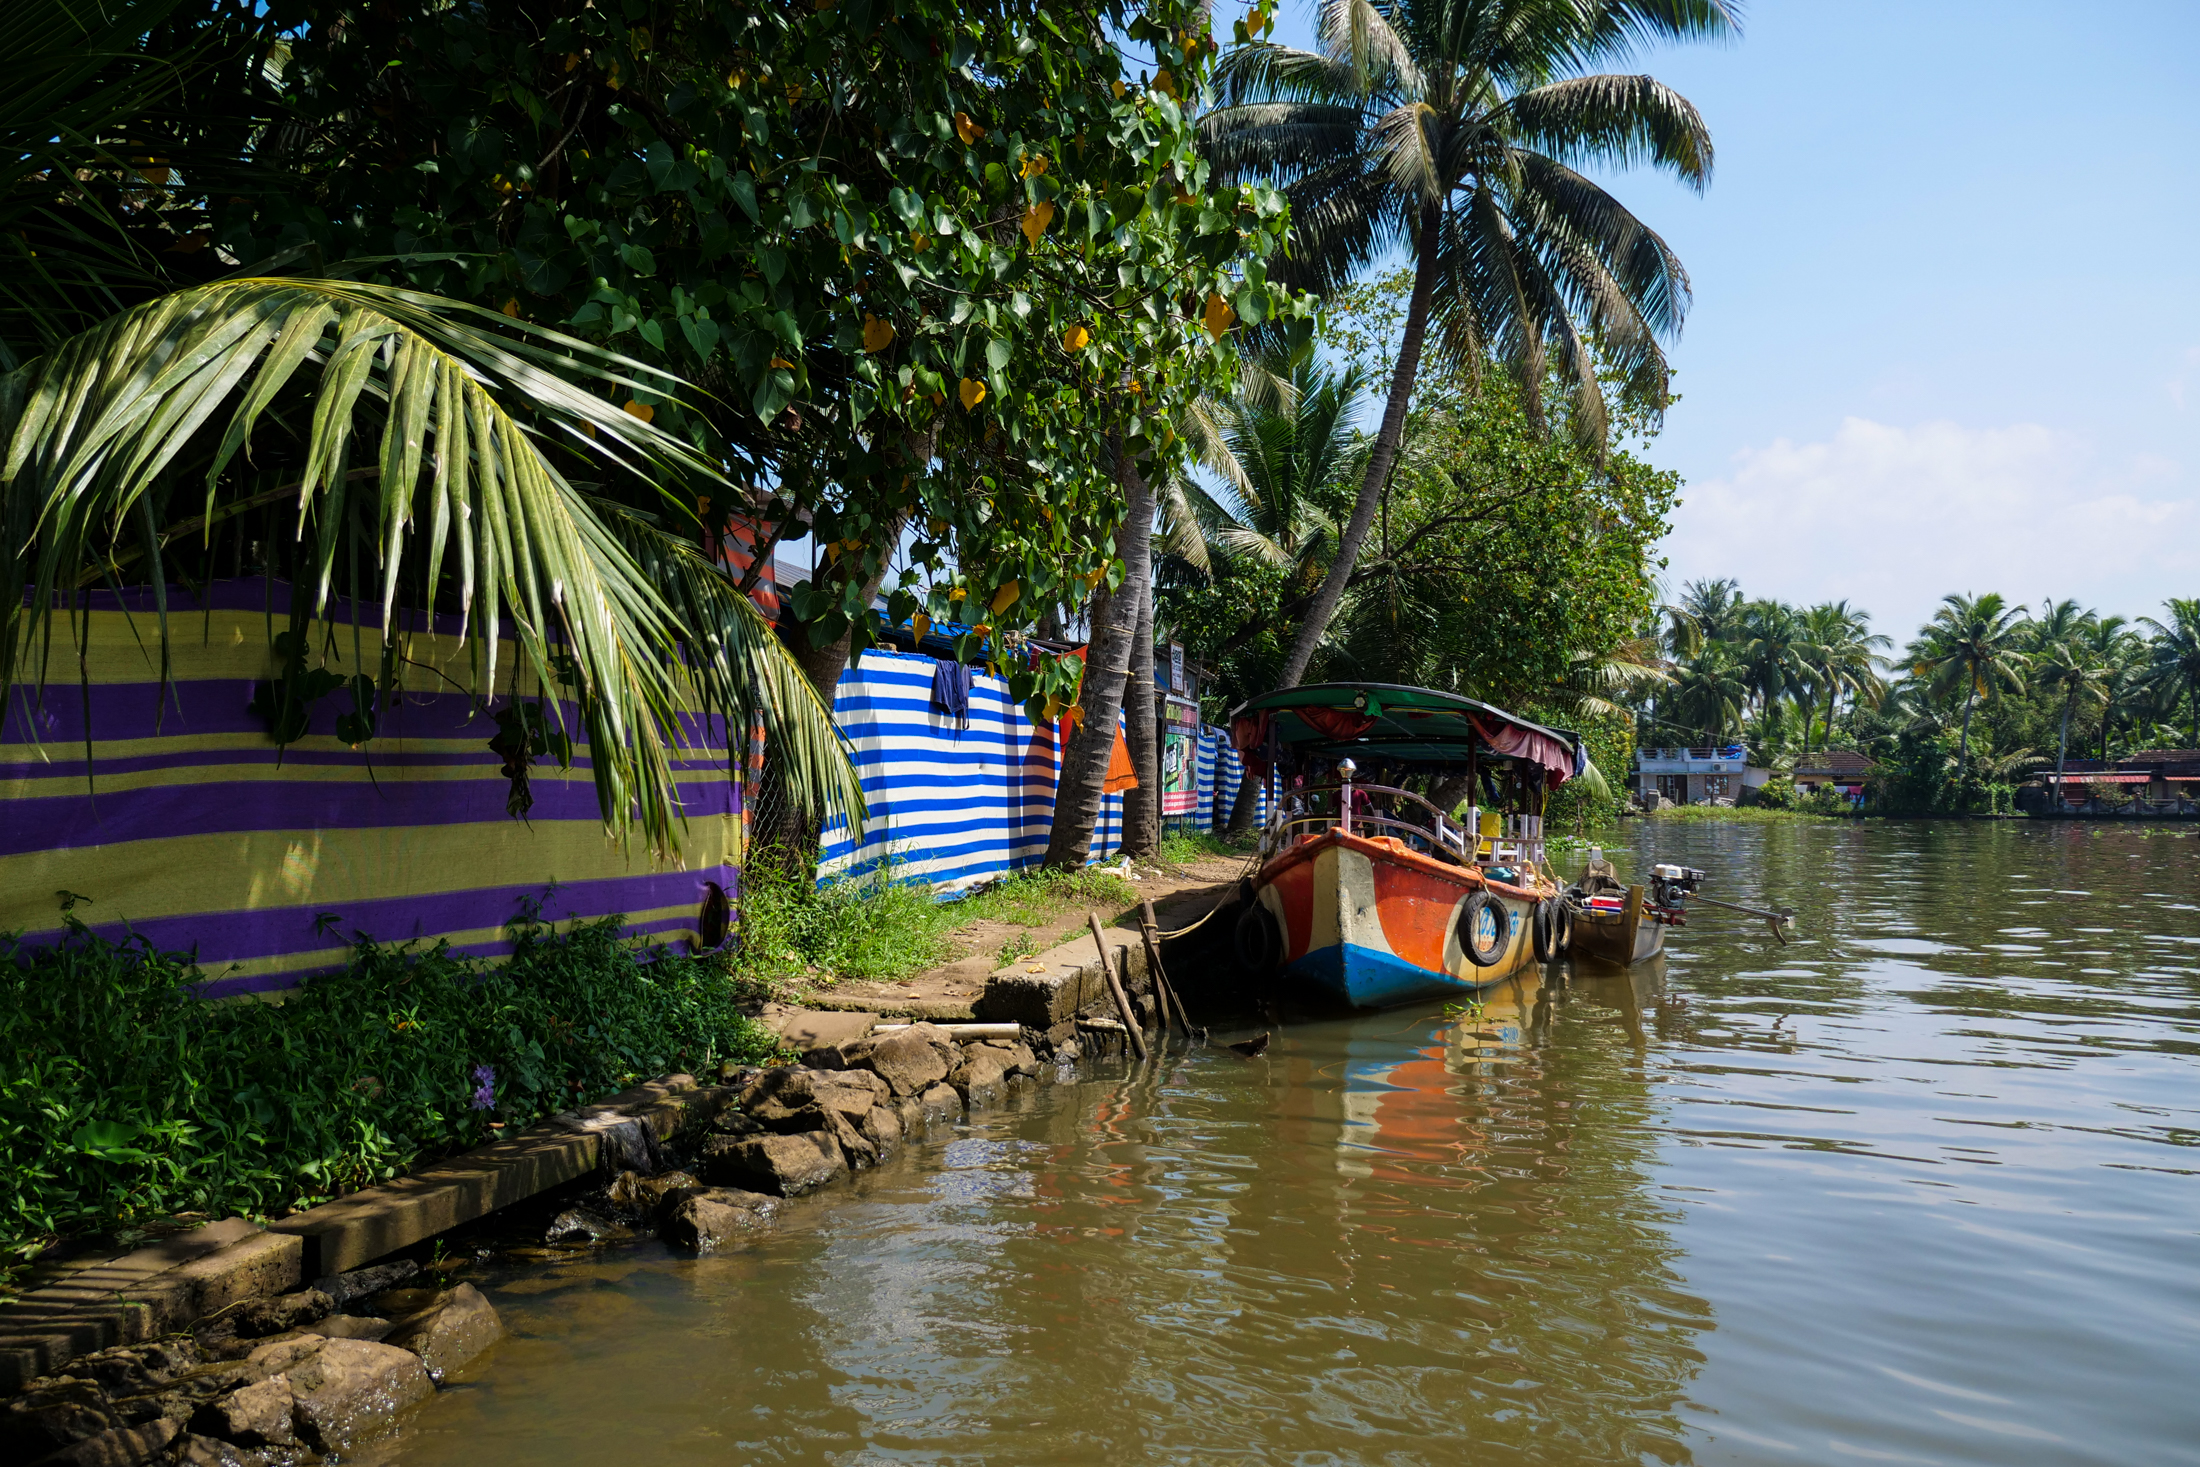 Kerala backwaters and the town of Alaphuzza are home to Kerala's Toddy Shop cuisine.